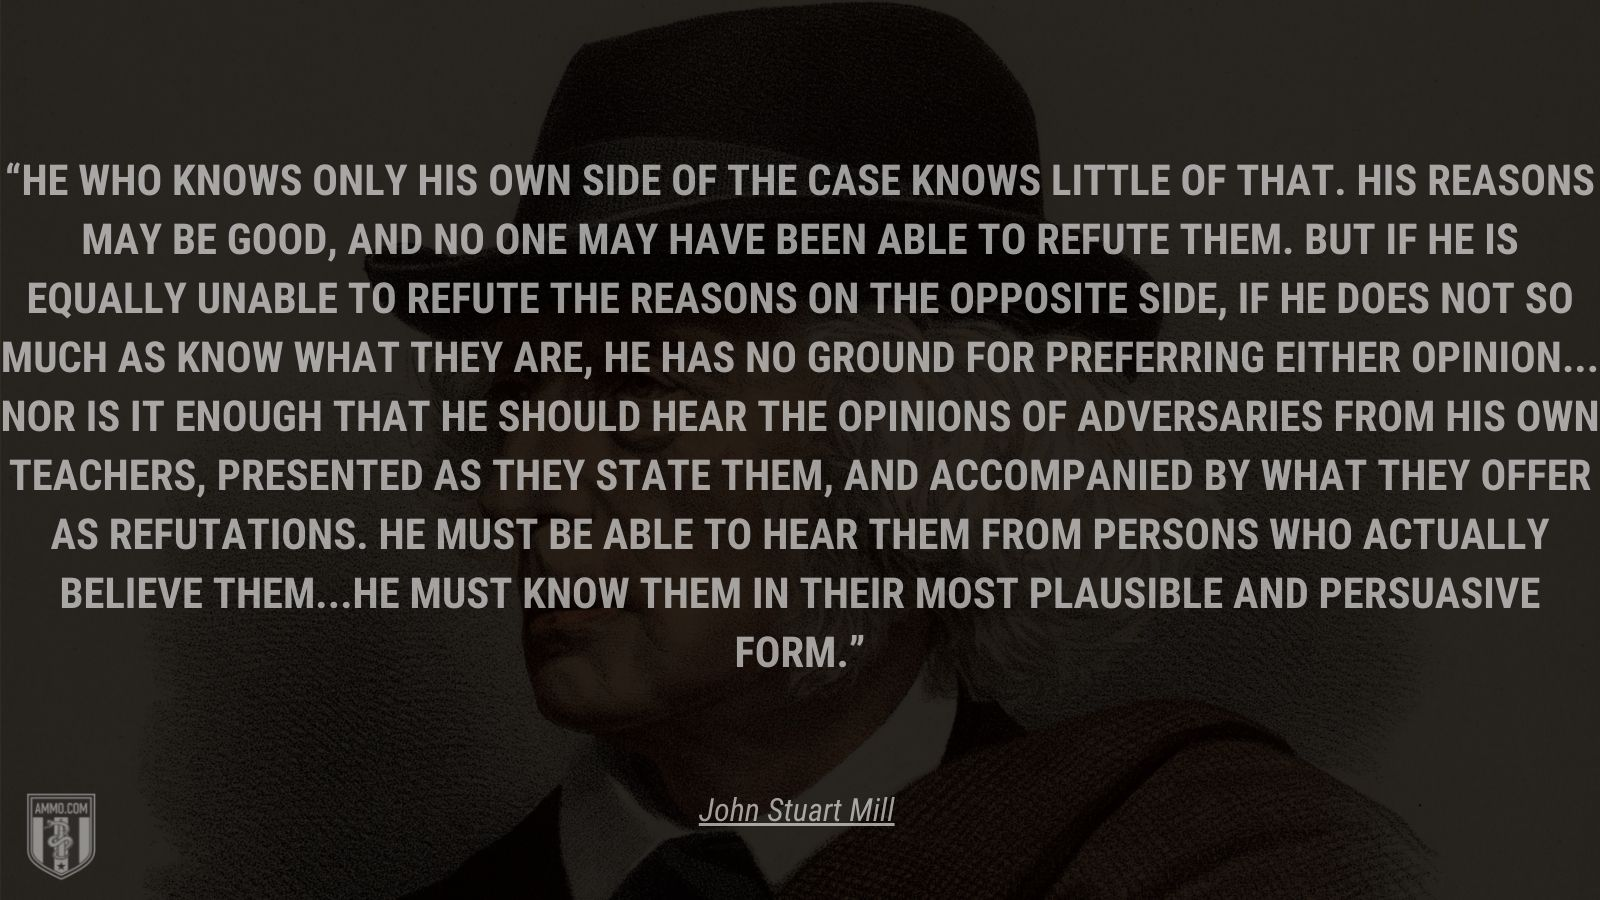 """""""He who knows only his own side of the case knows little of that. His reasons may be good, and no one may have been able to refute them. But if he is equally unable to refute the reasons on the opposite side, if he does not so much as know what they are, he has no ground for preferring either opinion... Nor is it enough that he should hear the opinions of adversaries from his own teachers, presented as they state them, and accompanied by what they offer as refutations. He must be able to hear them from persons who actually believe them...he must know them in their most plausible and persuasive form."""" - John Stuart Mill"""